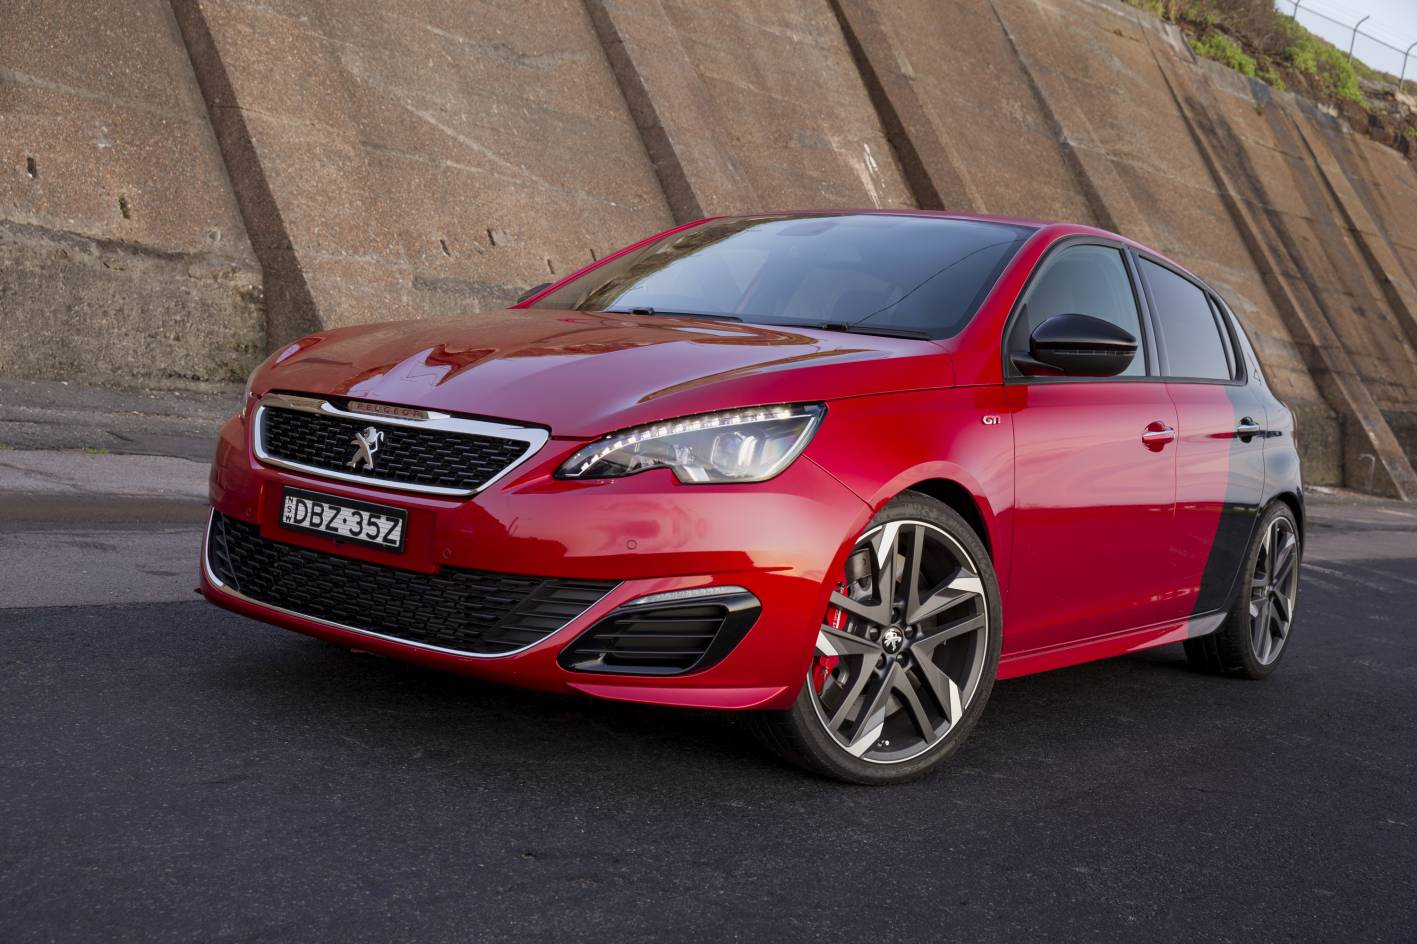 Review - 2016 Peugeot 308 GTi Review and Road Test